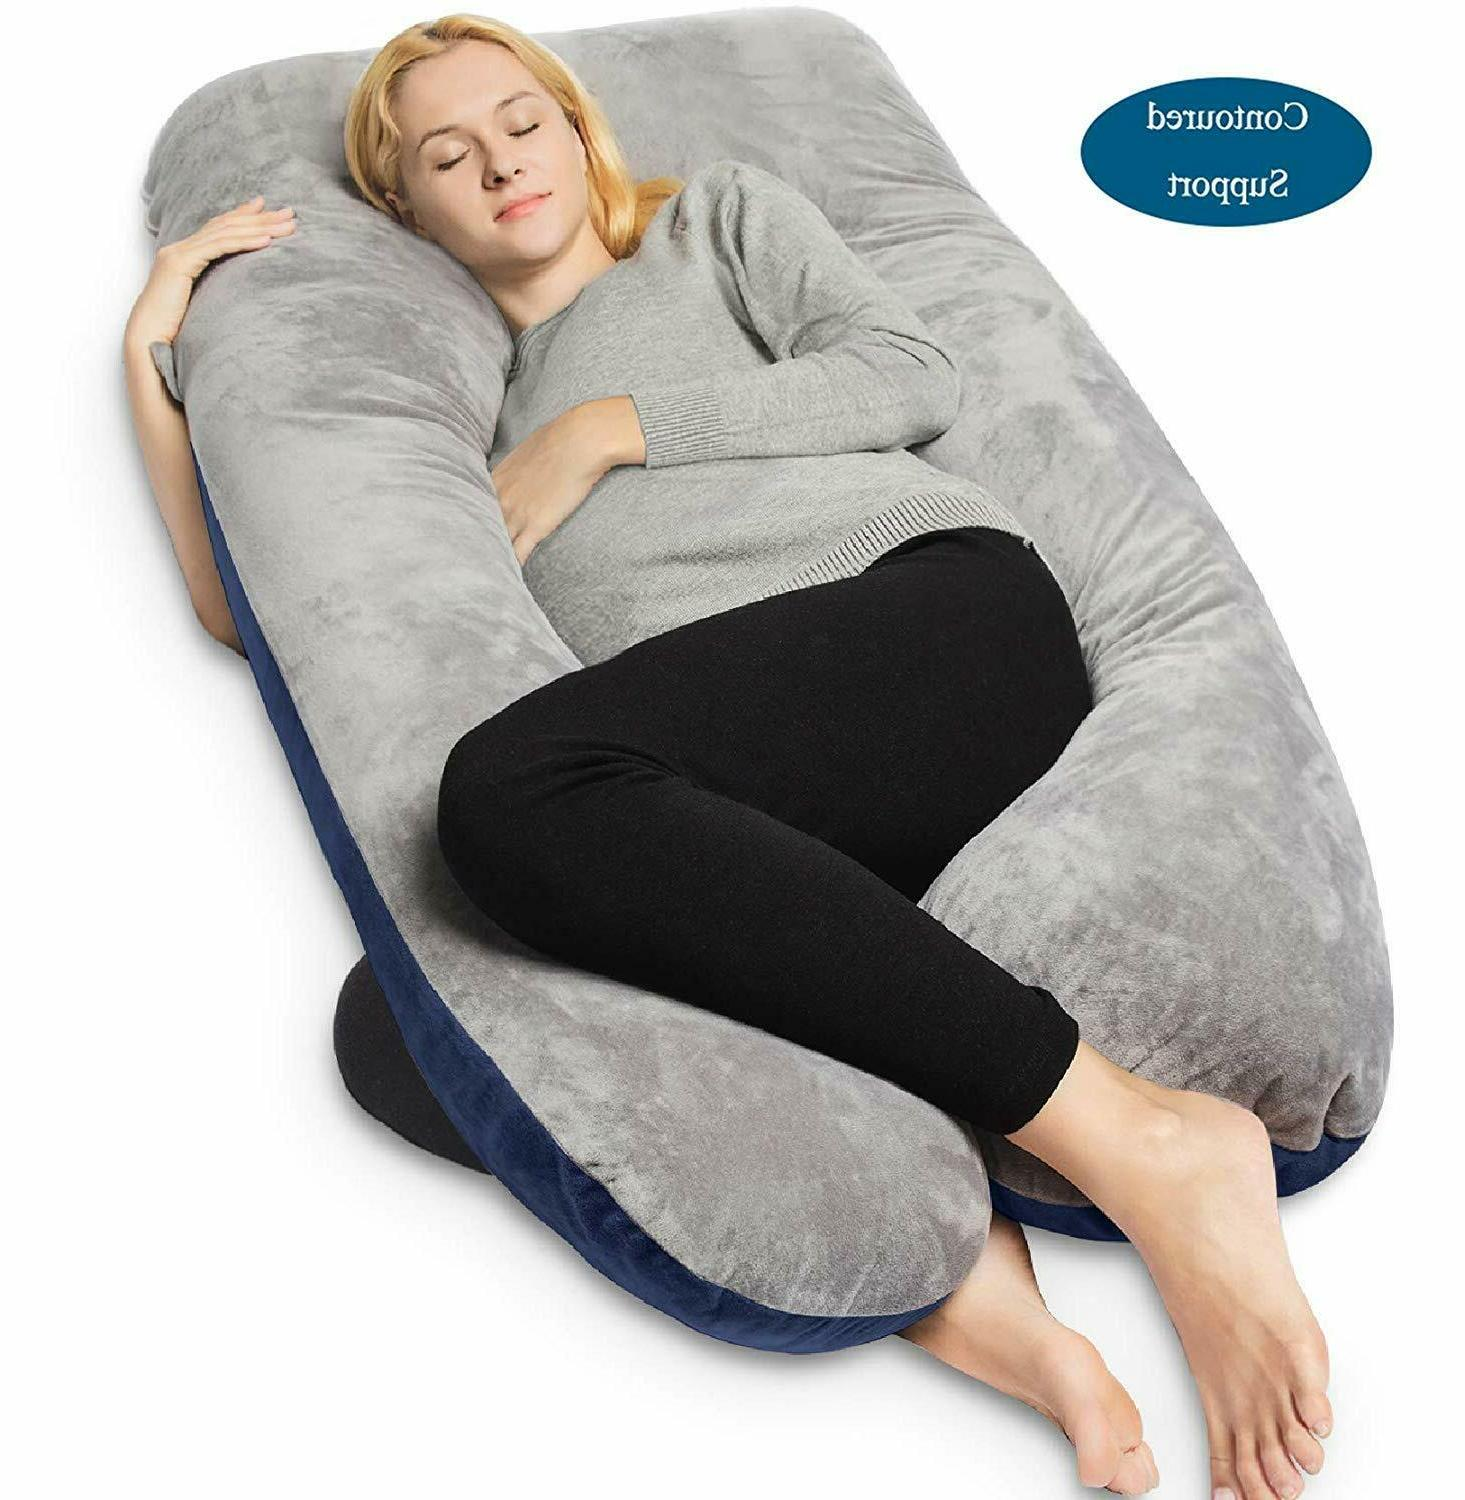 queen rose u shaped body pillow maternity